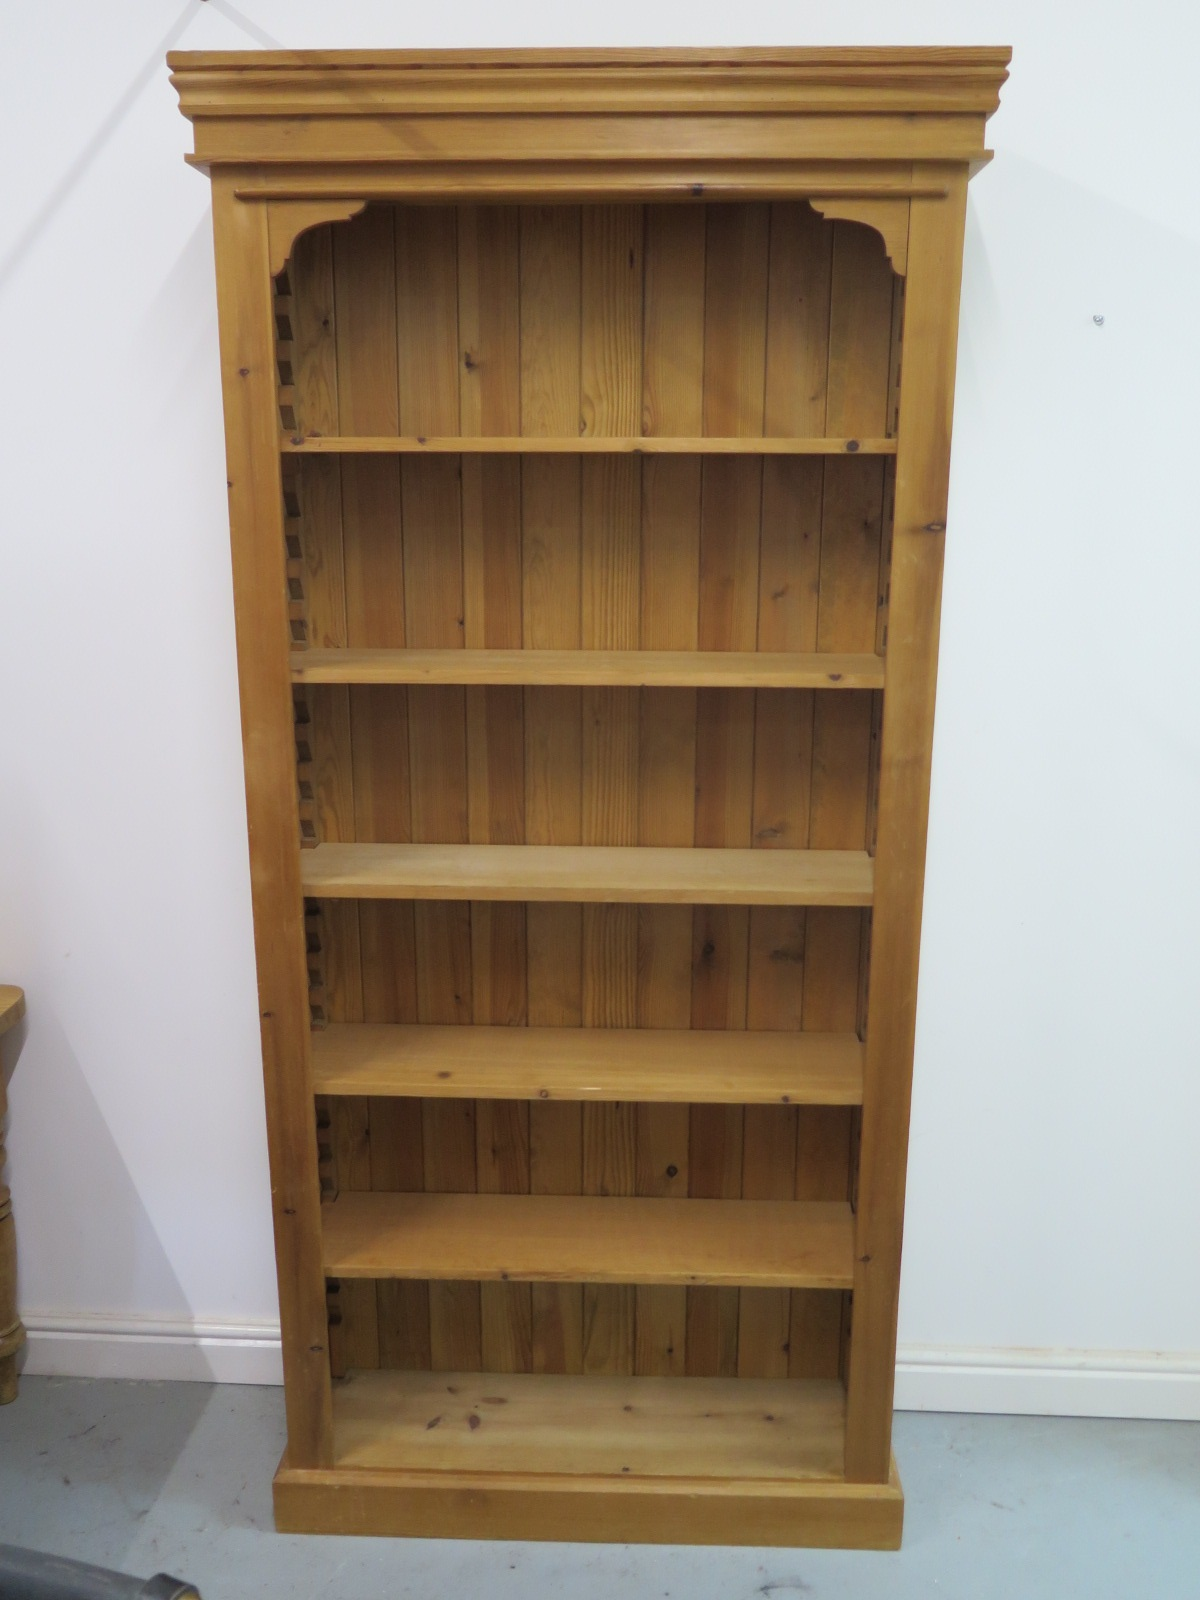 Lot 64 - A modern pine bookcase with adjustable shelving, 210cm tall x 100cm wide x 27cm deep, shelf depth